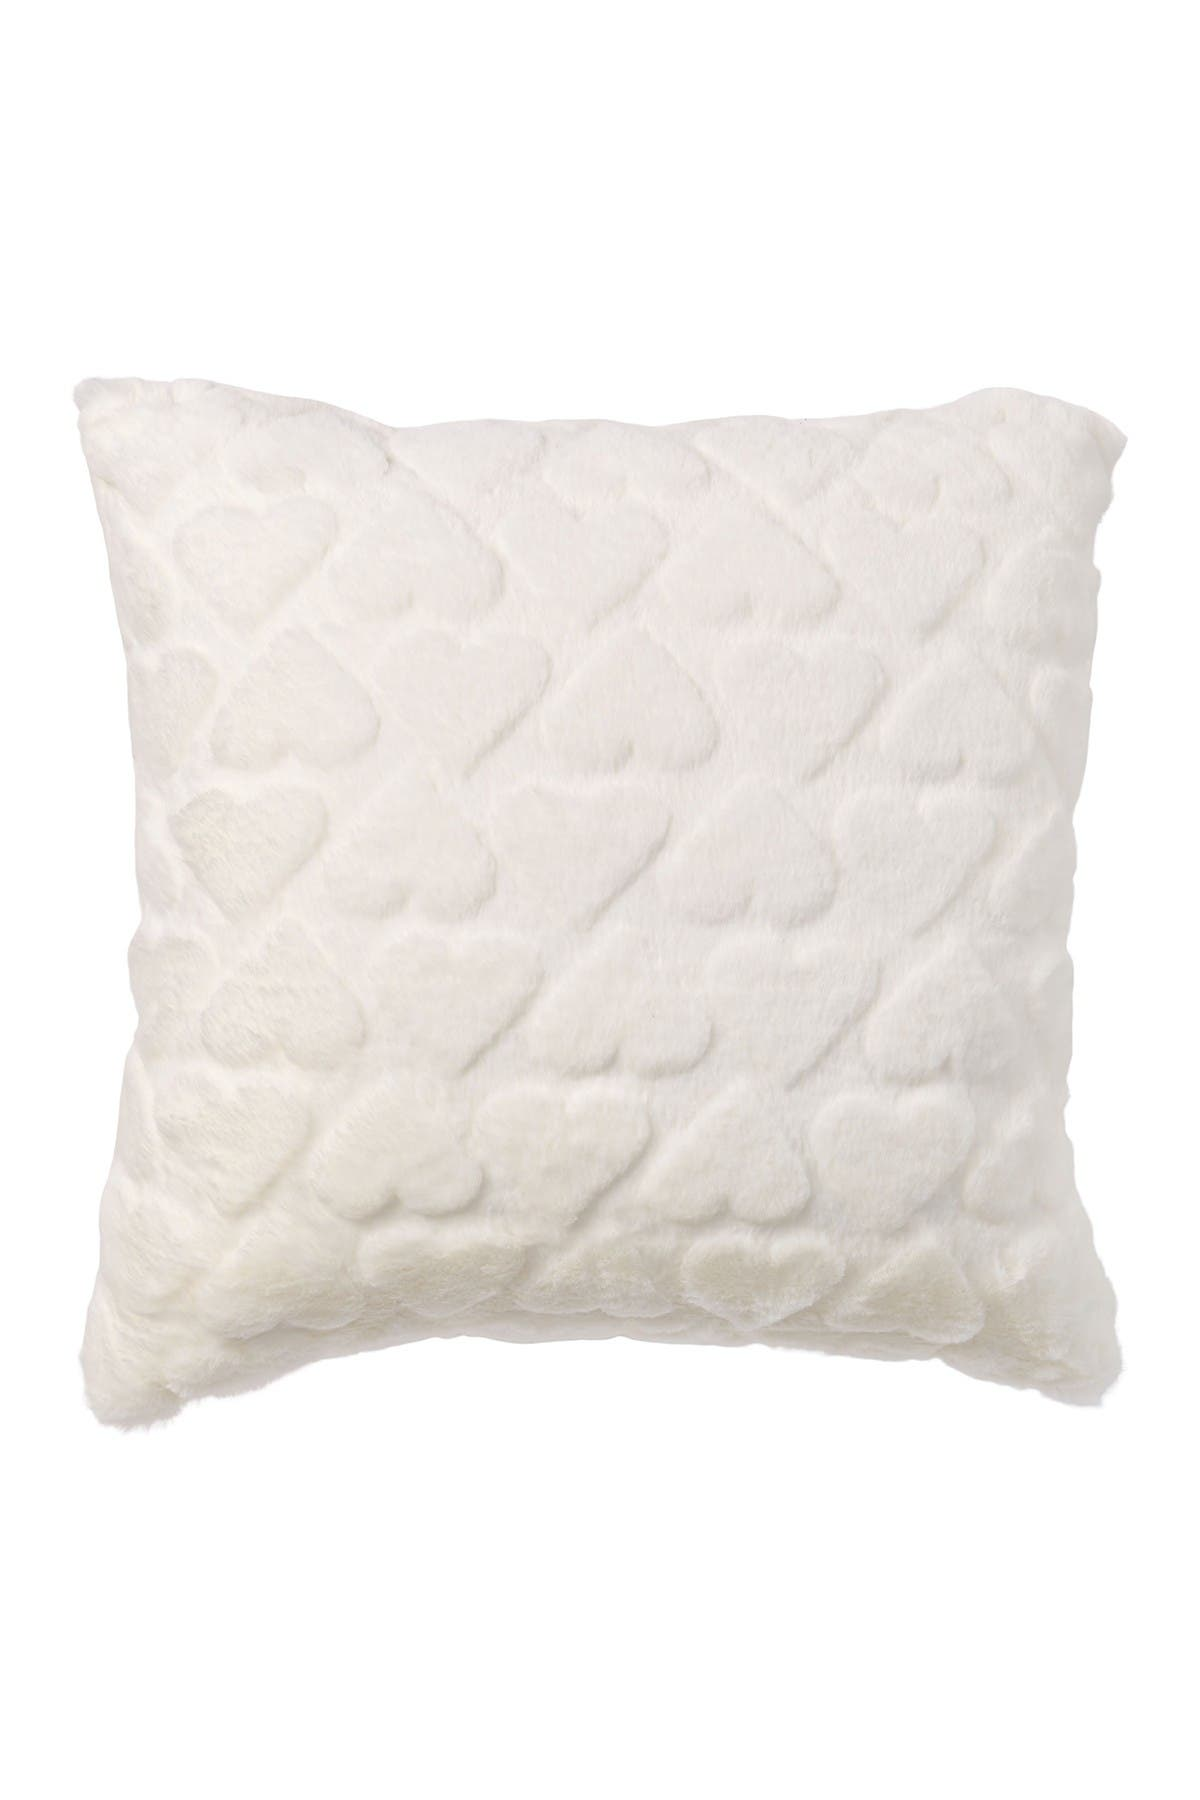 """Image of Nordstrom Rack Sheared Hearts Plush Pillow 16""""x16"""""""